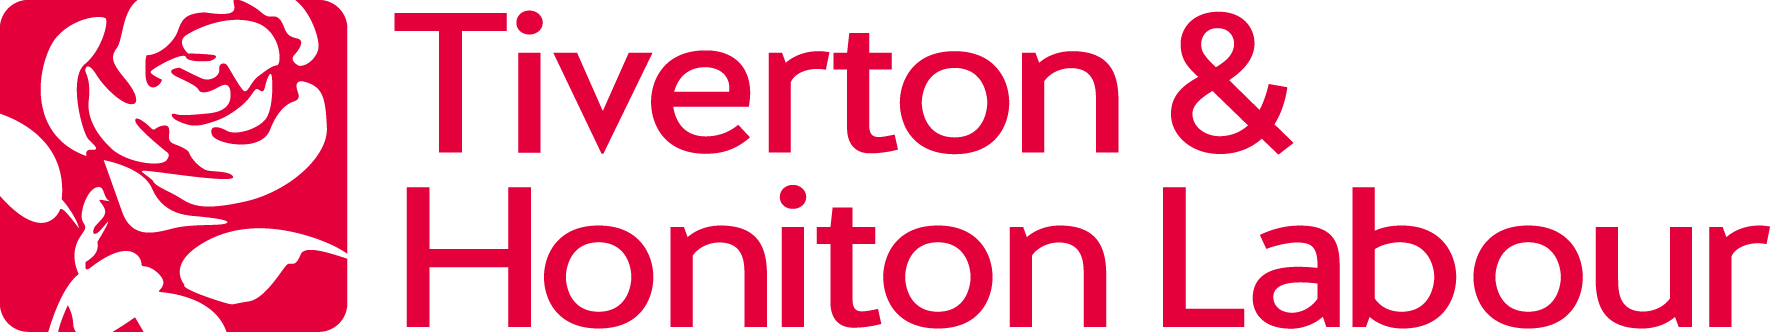 Tiverton & Honiton Constituency Labour Party (CLP)